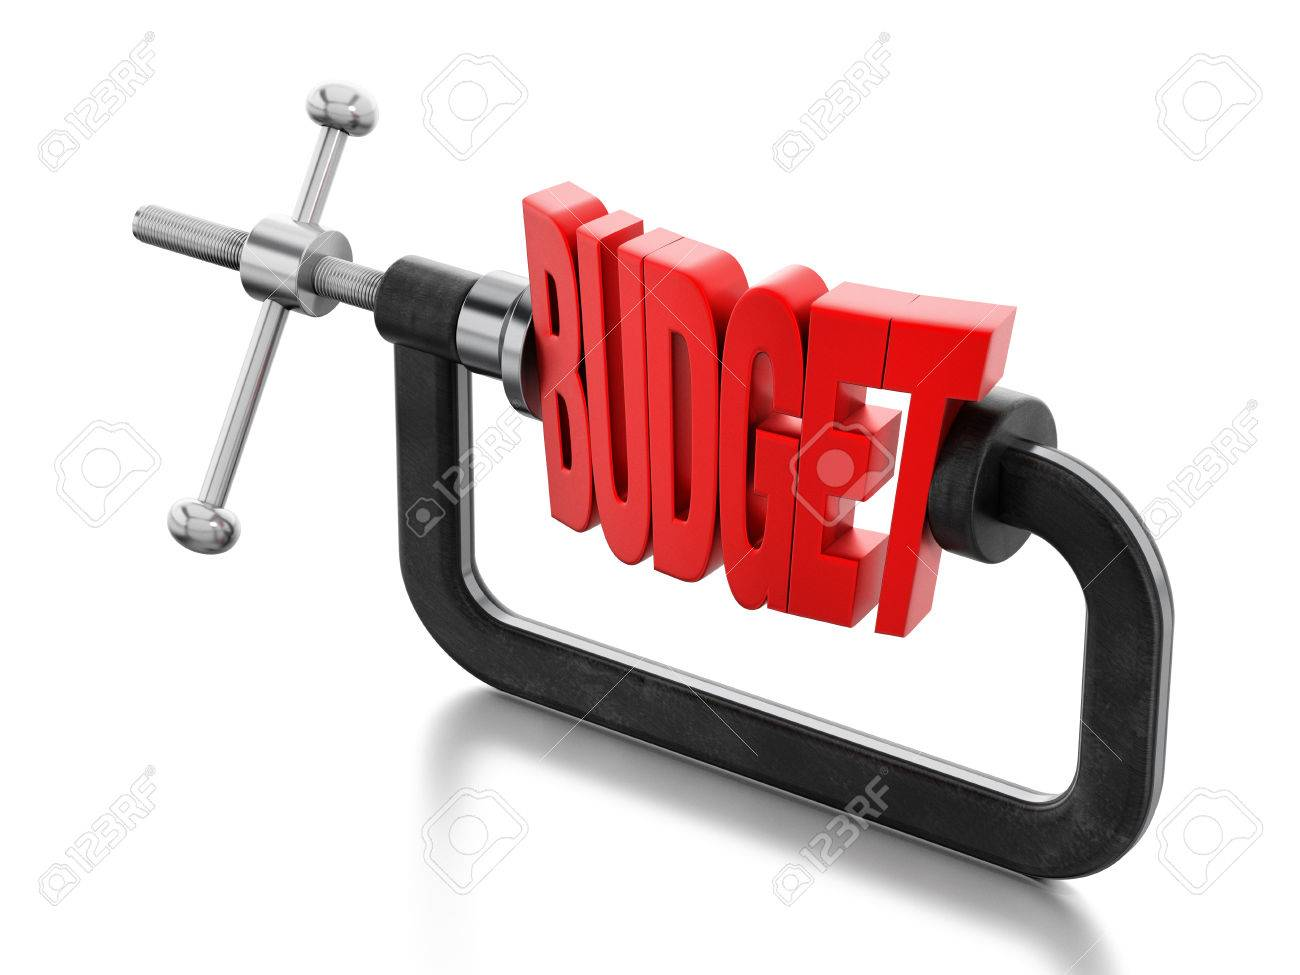 Red budget word clamped inside the vice. Stock Photo - 49108117